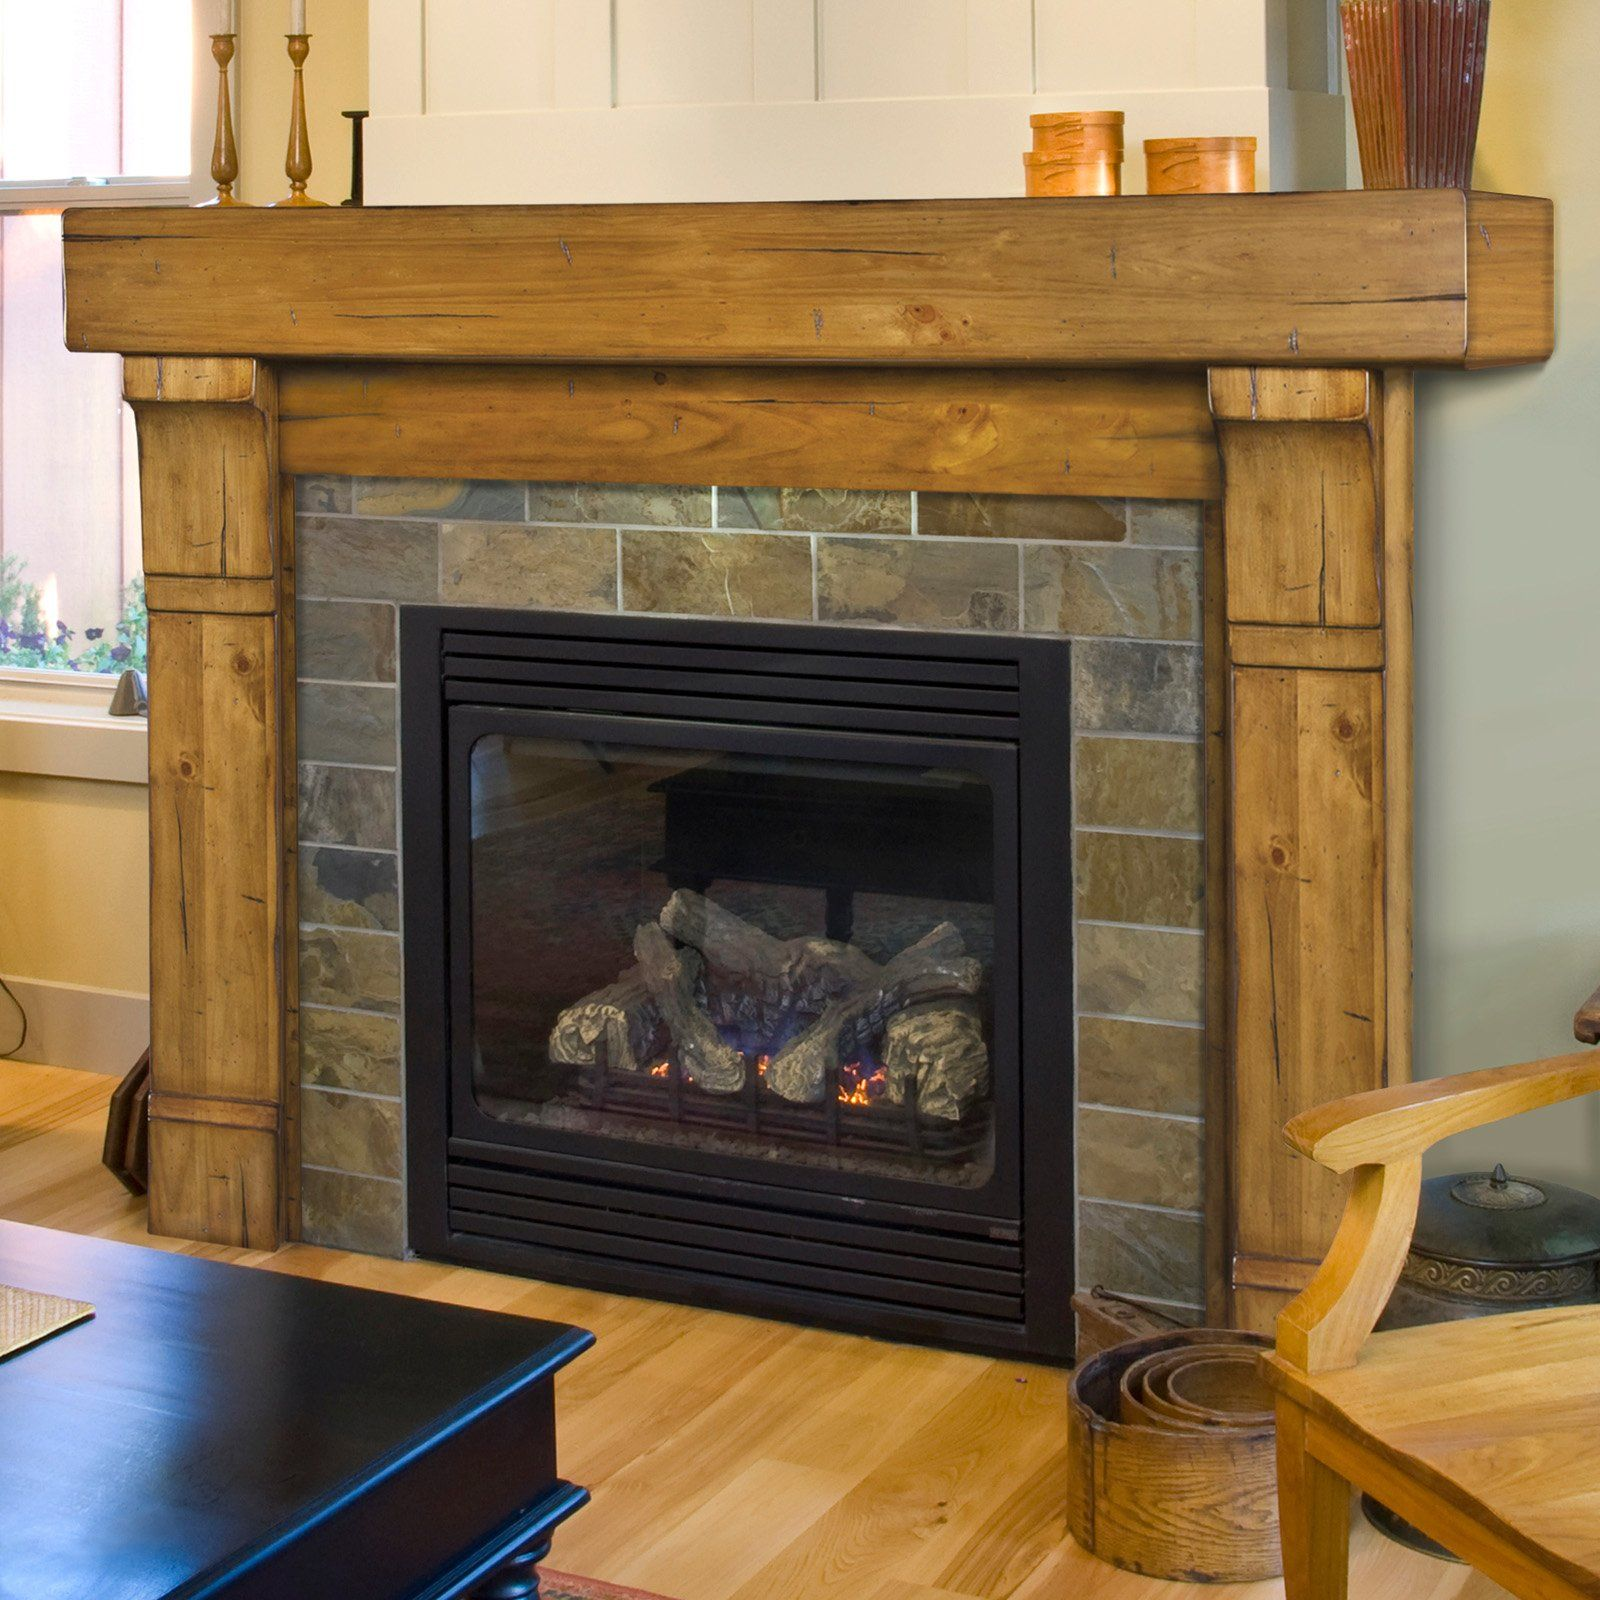 Pearl Mantels Cumberland Fireplace Surround Www Hayneedle Com Rustic Fireplace Mantels Wooden Fireplace Fireplace Mantel Surrounds